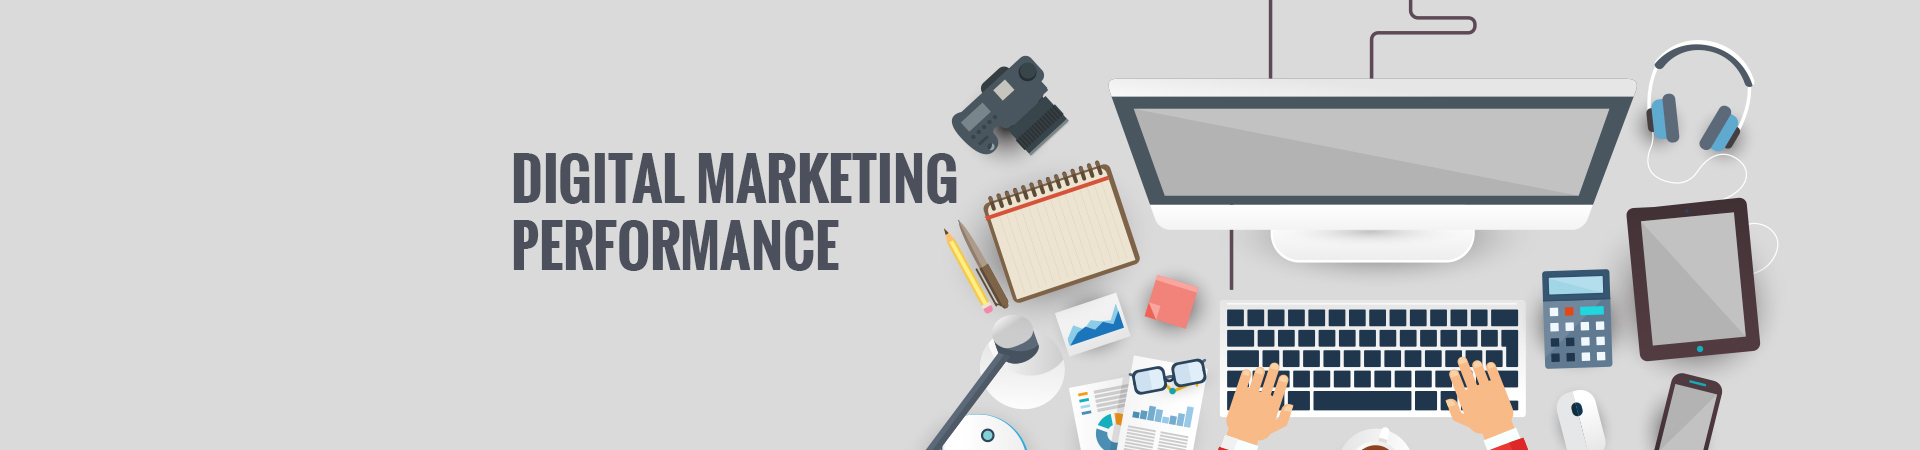 banner digital marketing performance